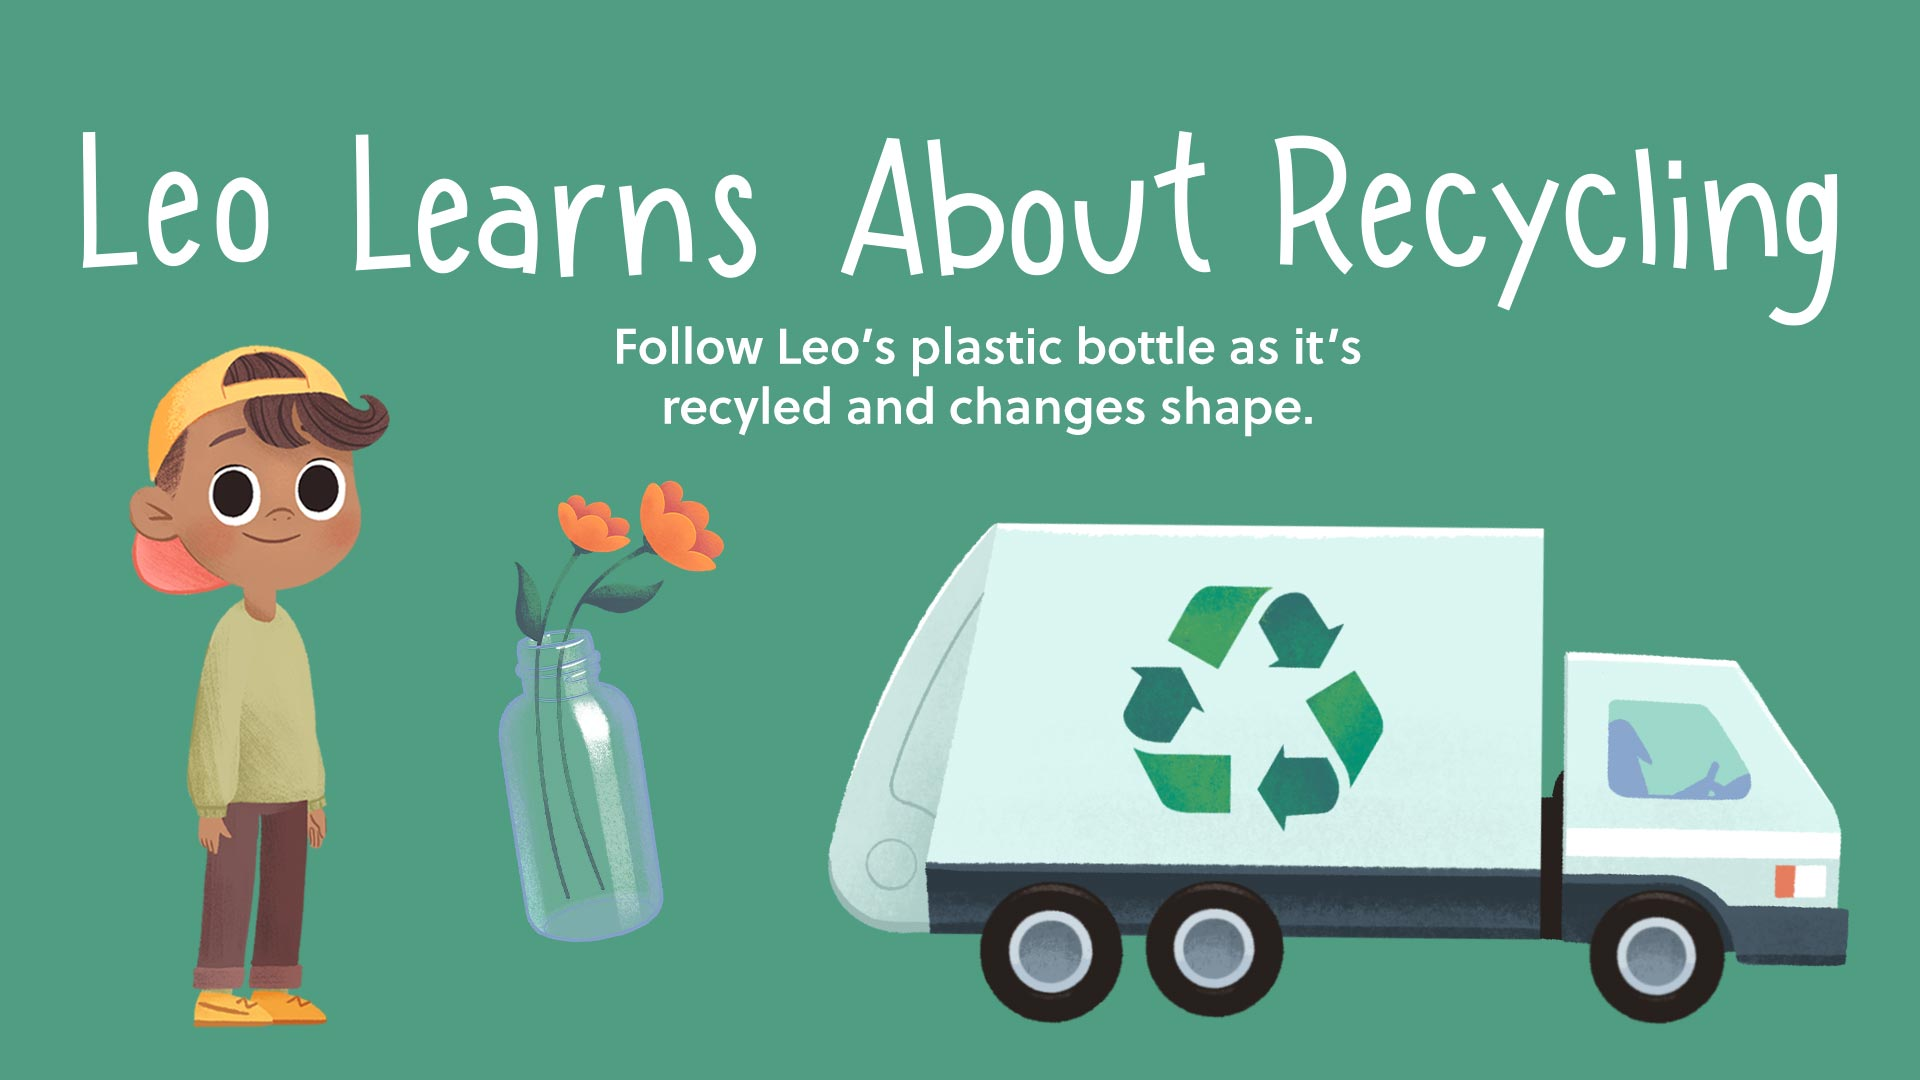 Leo Learns About Recycling - Follow Leo's plastic bottle as it's recycled and changes shape.